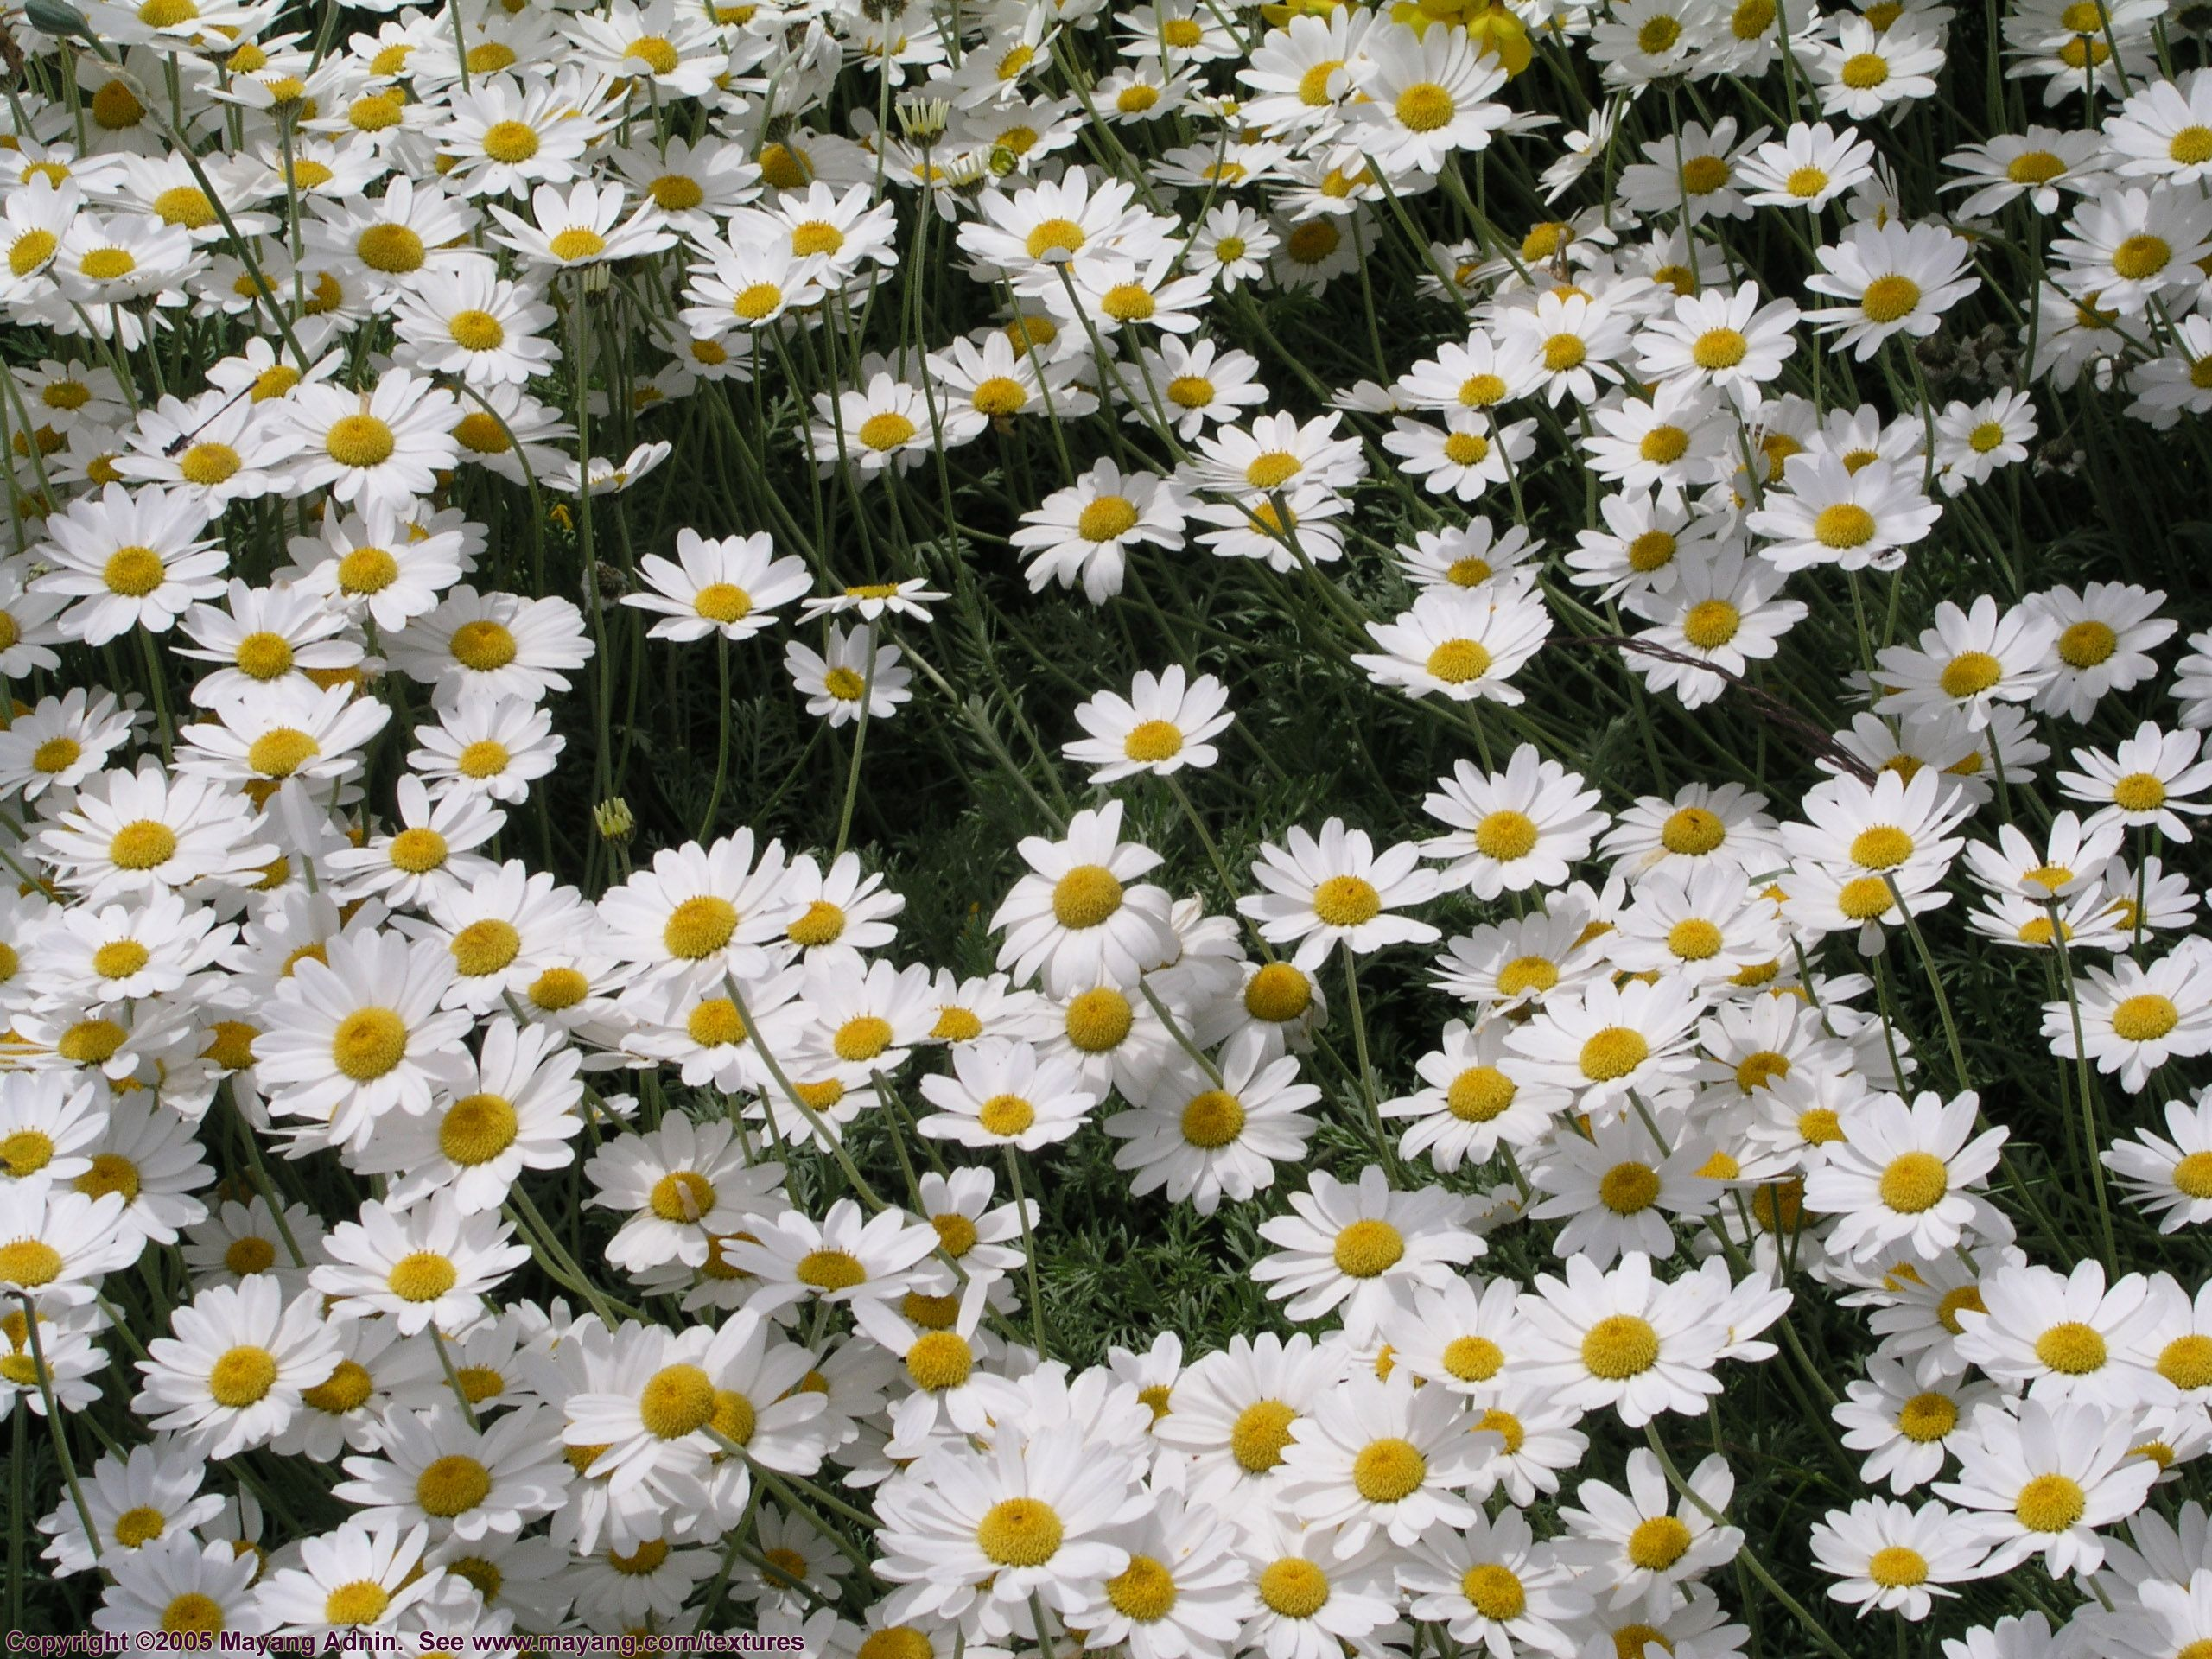 Tiny daisy like flowers google search flowers pinterest tiny daisy like flowers google search izmirmasajfo Images